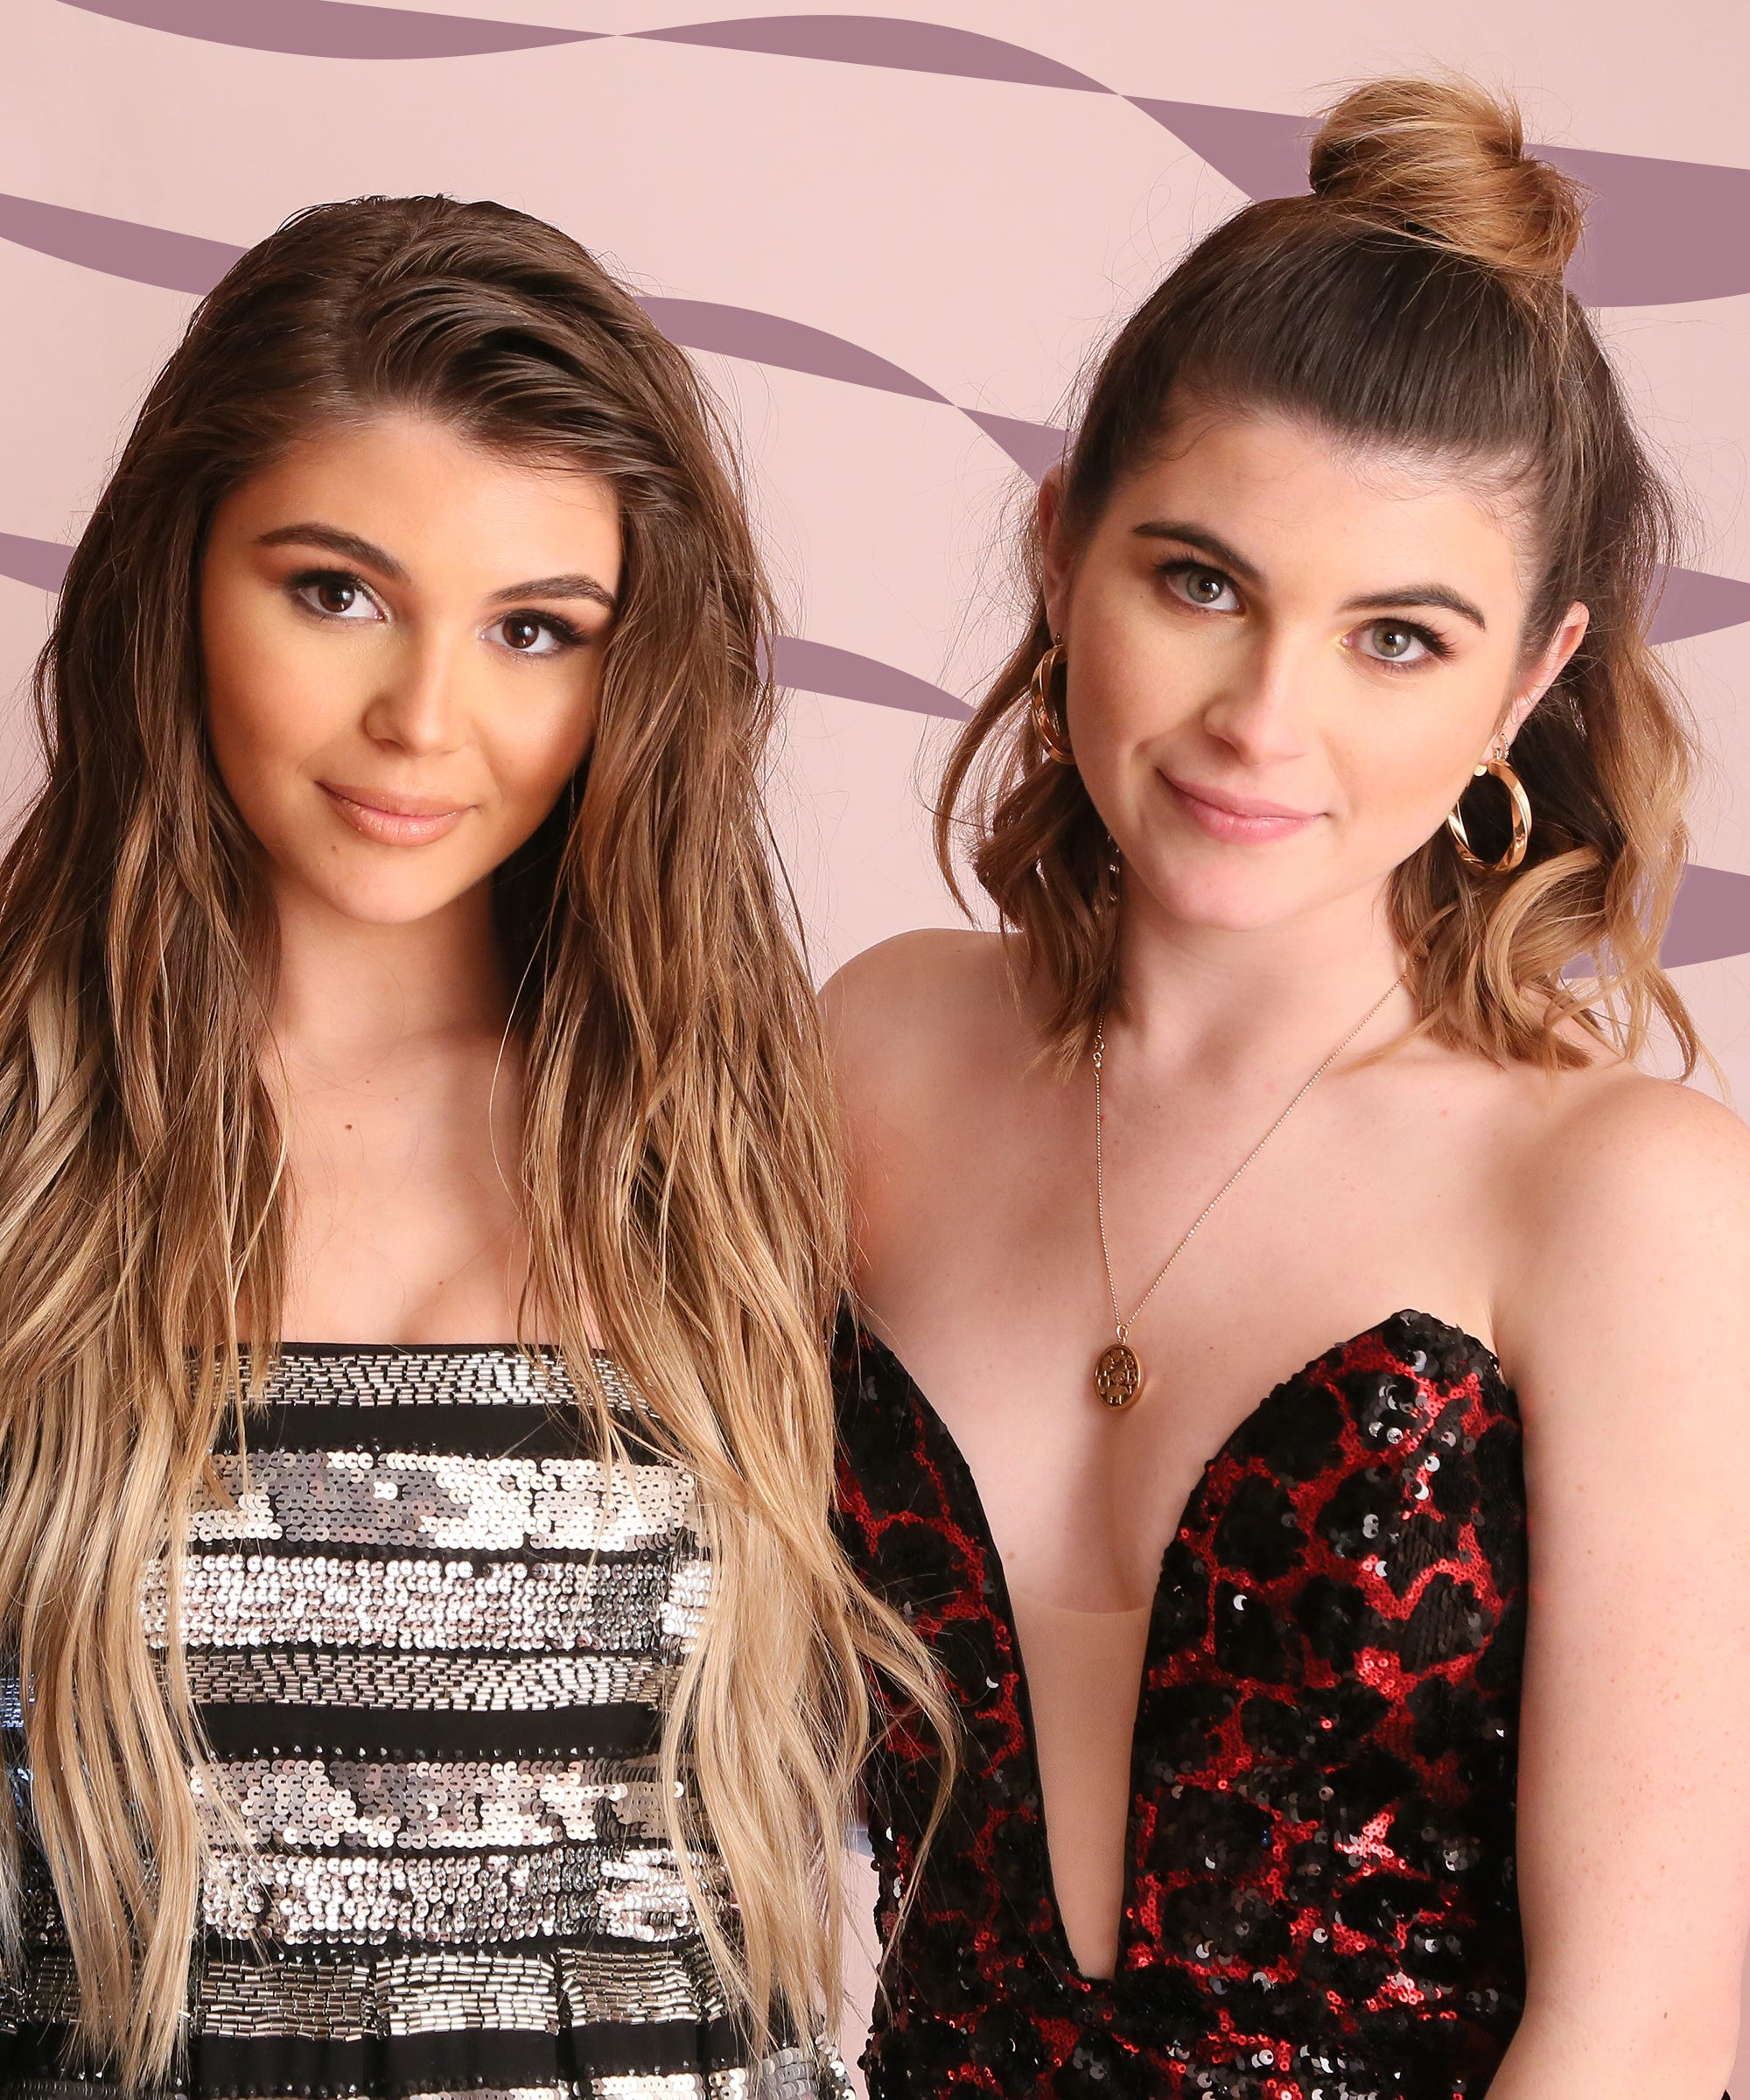 Olivia Jade & Bella Giannulli Deliver A Message To Everyone Talking About Them After The College Scam